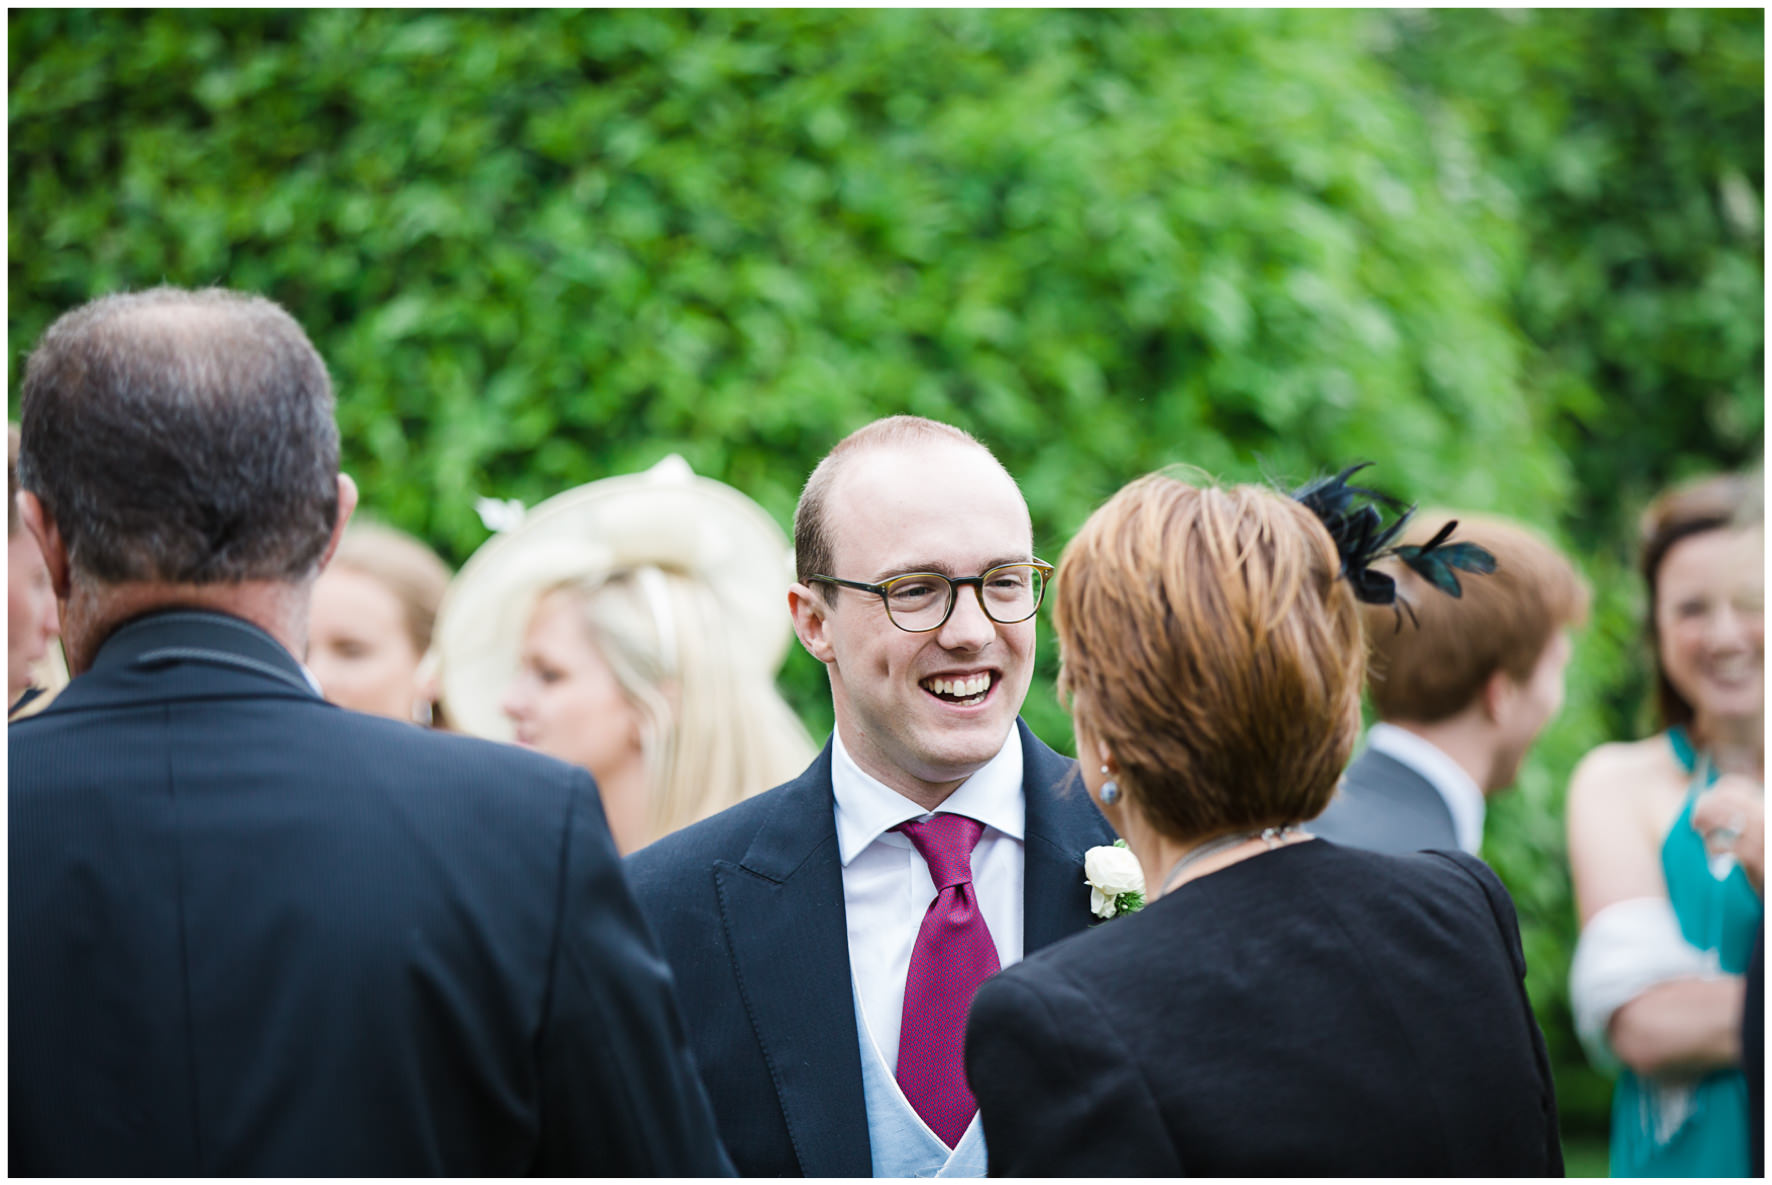 Lucy Davenport Photography, Cornwell Manor, wedding venue, Oxfordshire, Cotswold wedding, drinks reception